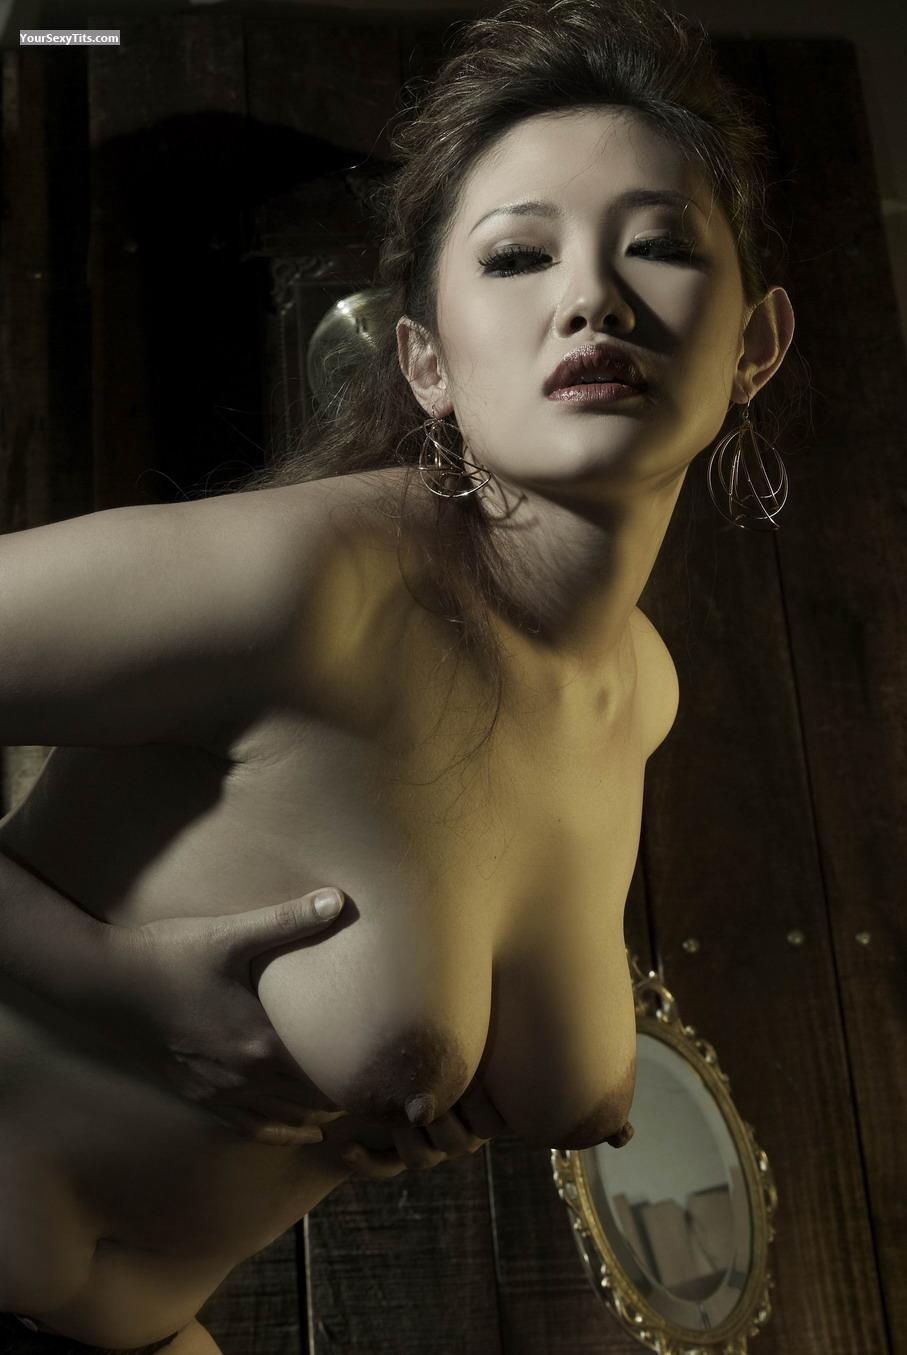 Tit Flash: Medium Tits - Topless Lina Wang from Indonesia